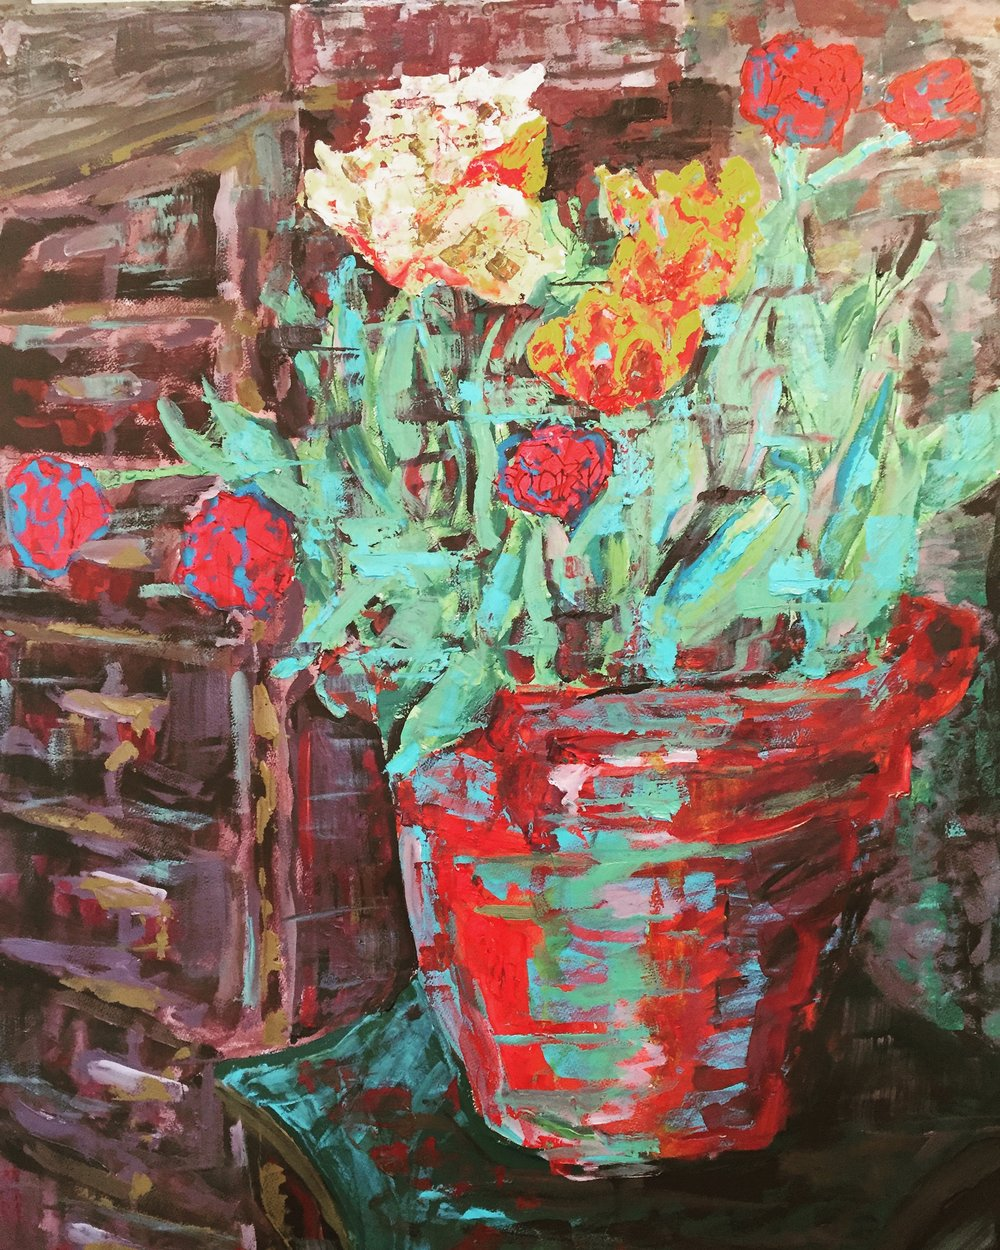 Still life flowers in red pot 2016, acrylic on paper, 118x89cm (image), 131x100cm (framed). £1500